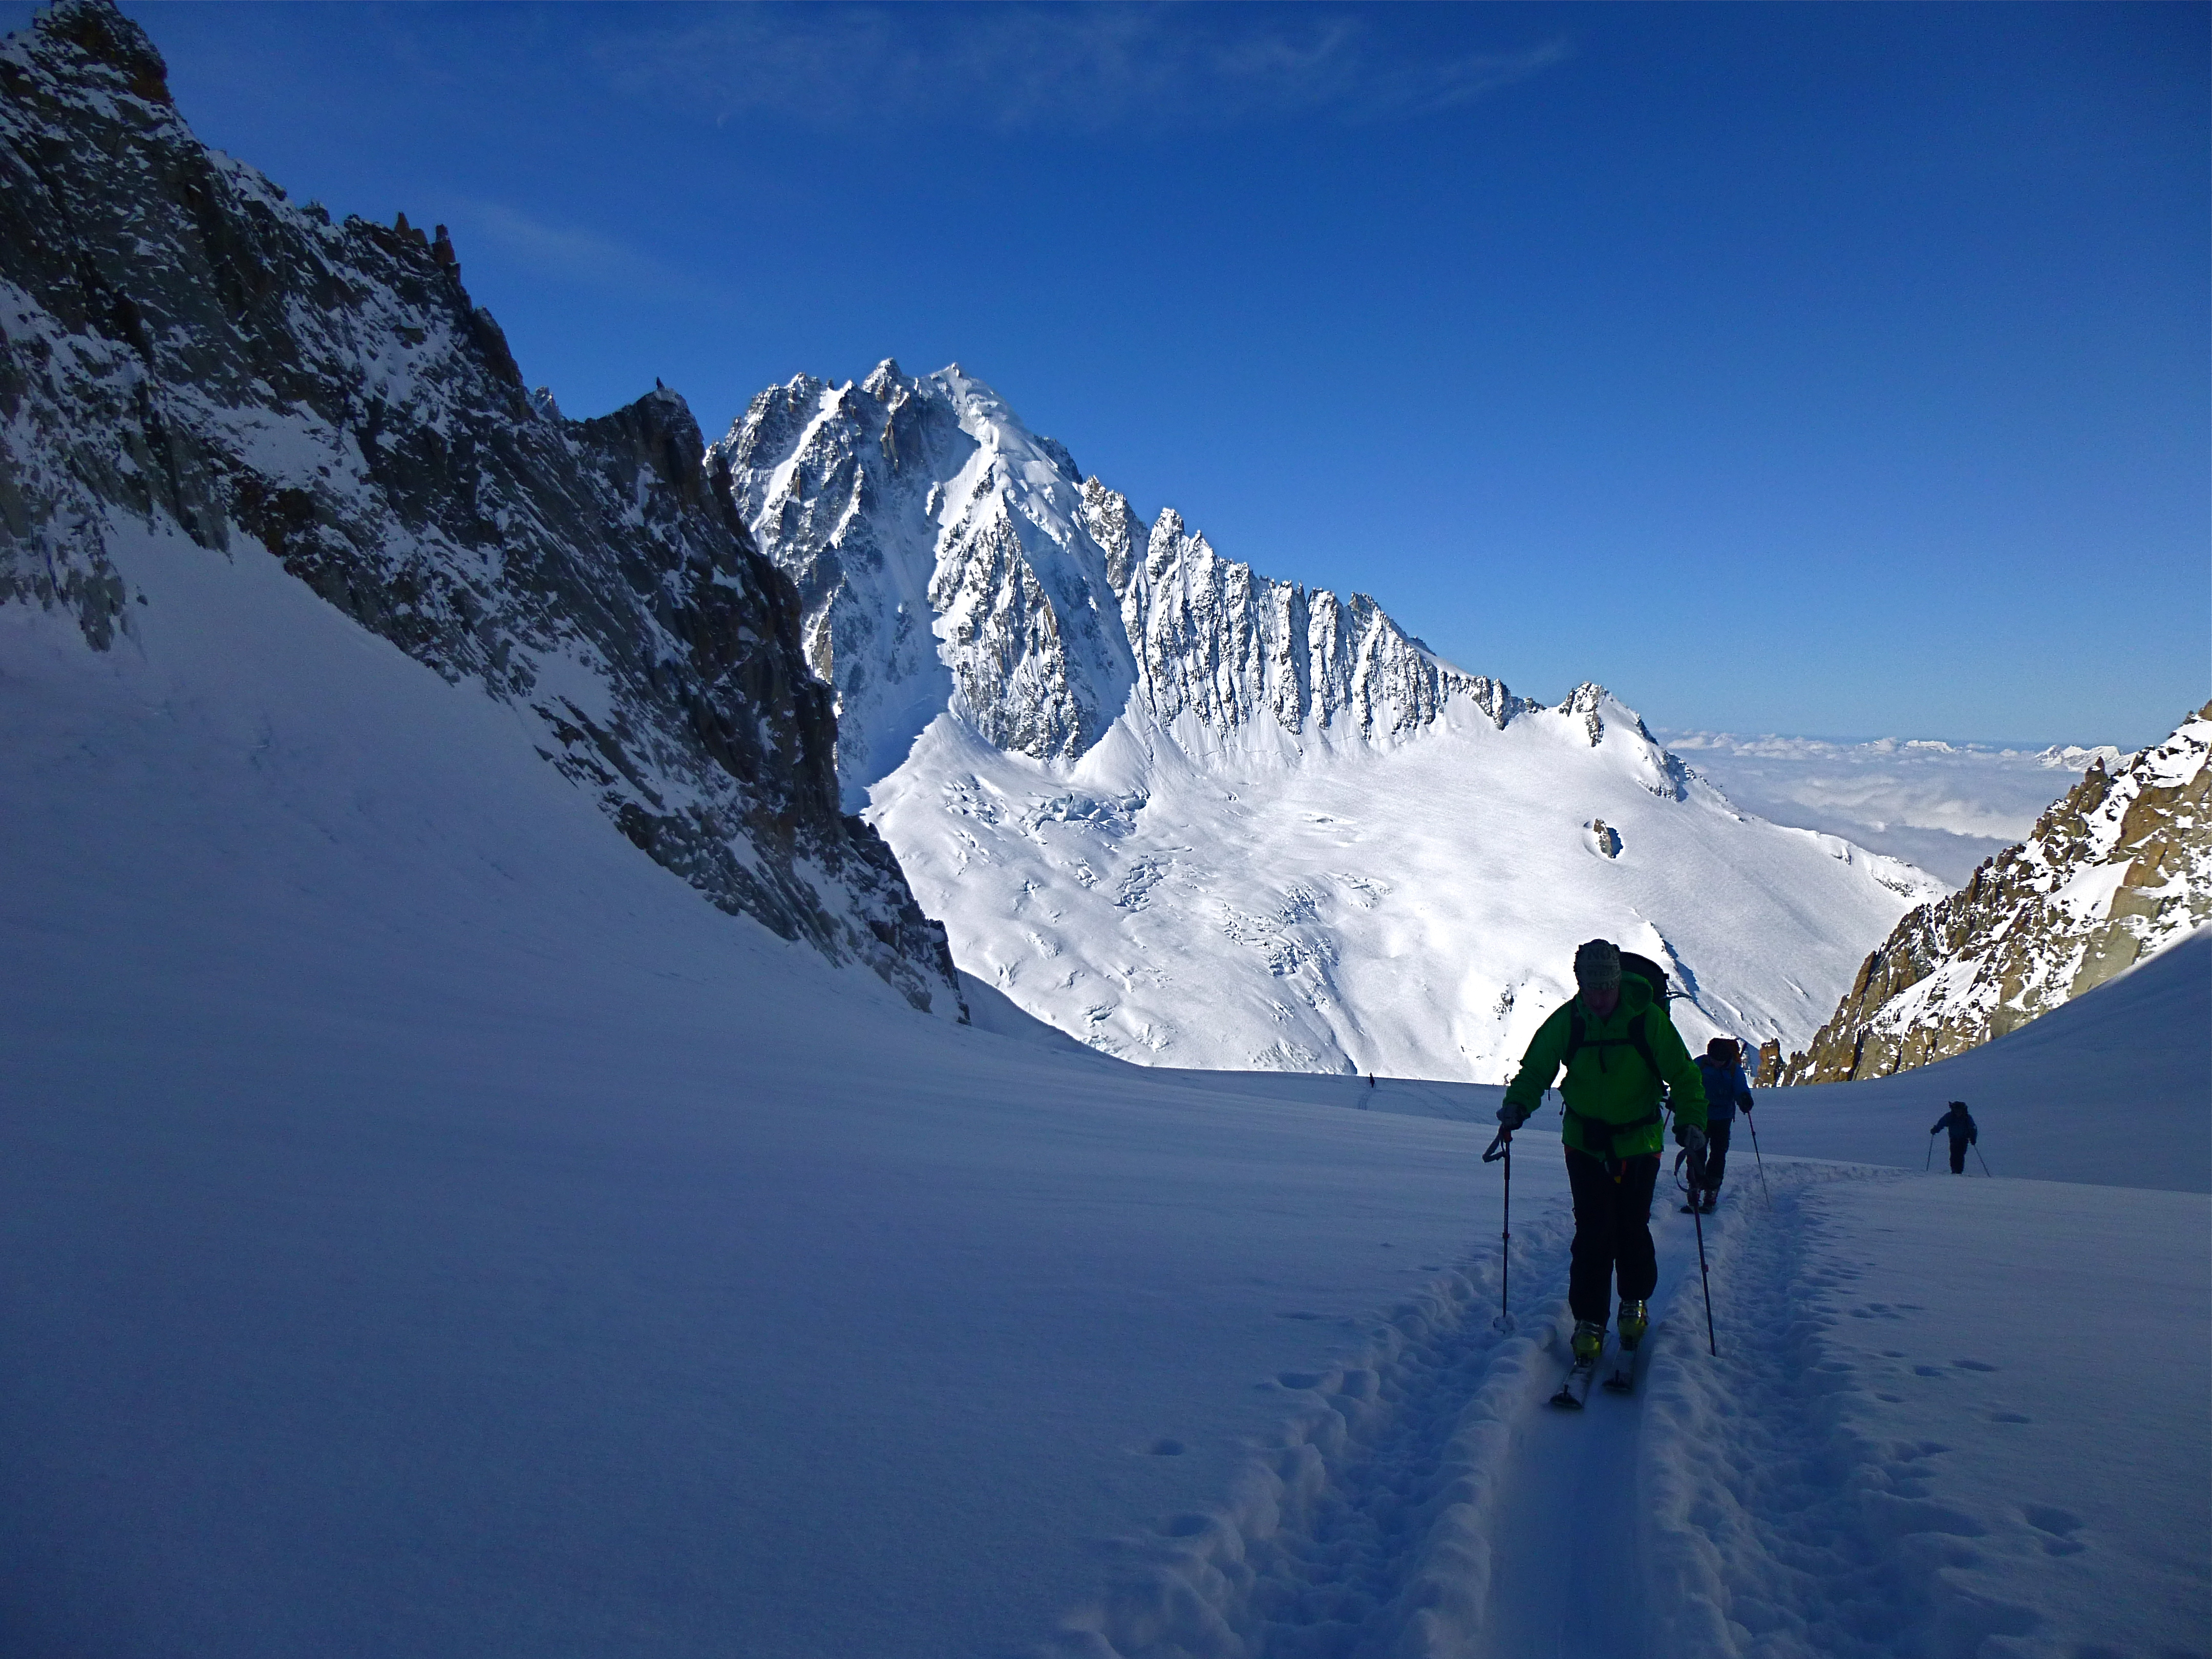 Skinning up to the Col de Chardonnet with the Grand Montets ski area in the background.